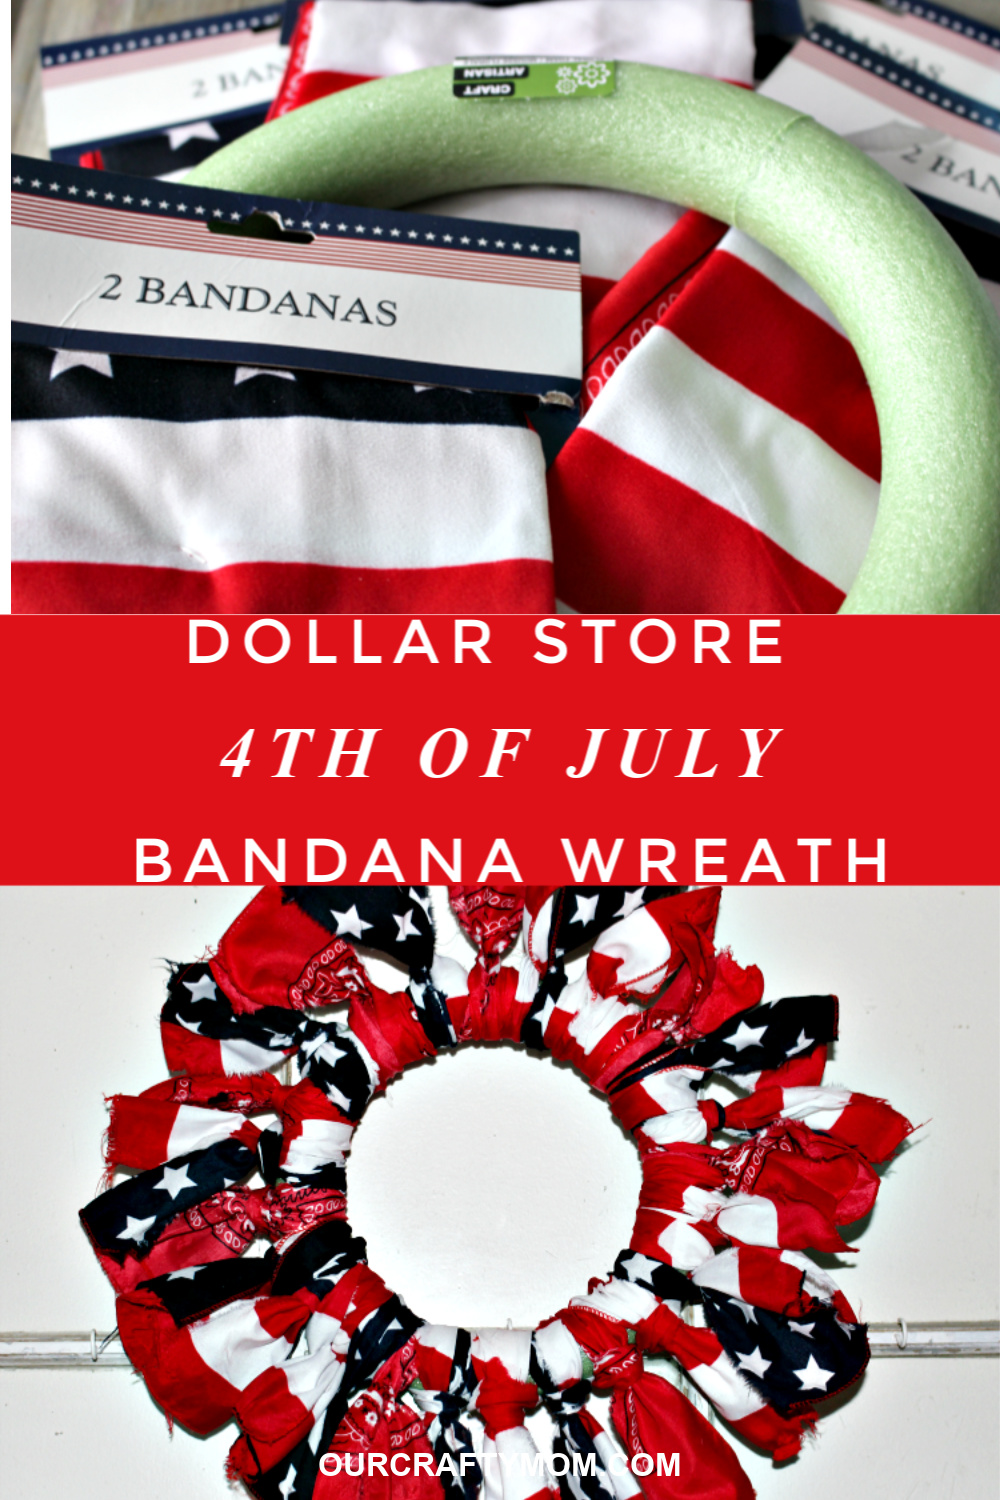 4th of july wreath with bandanas from the dollar store